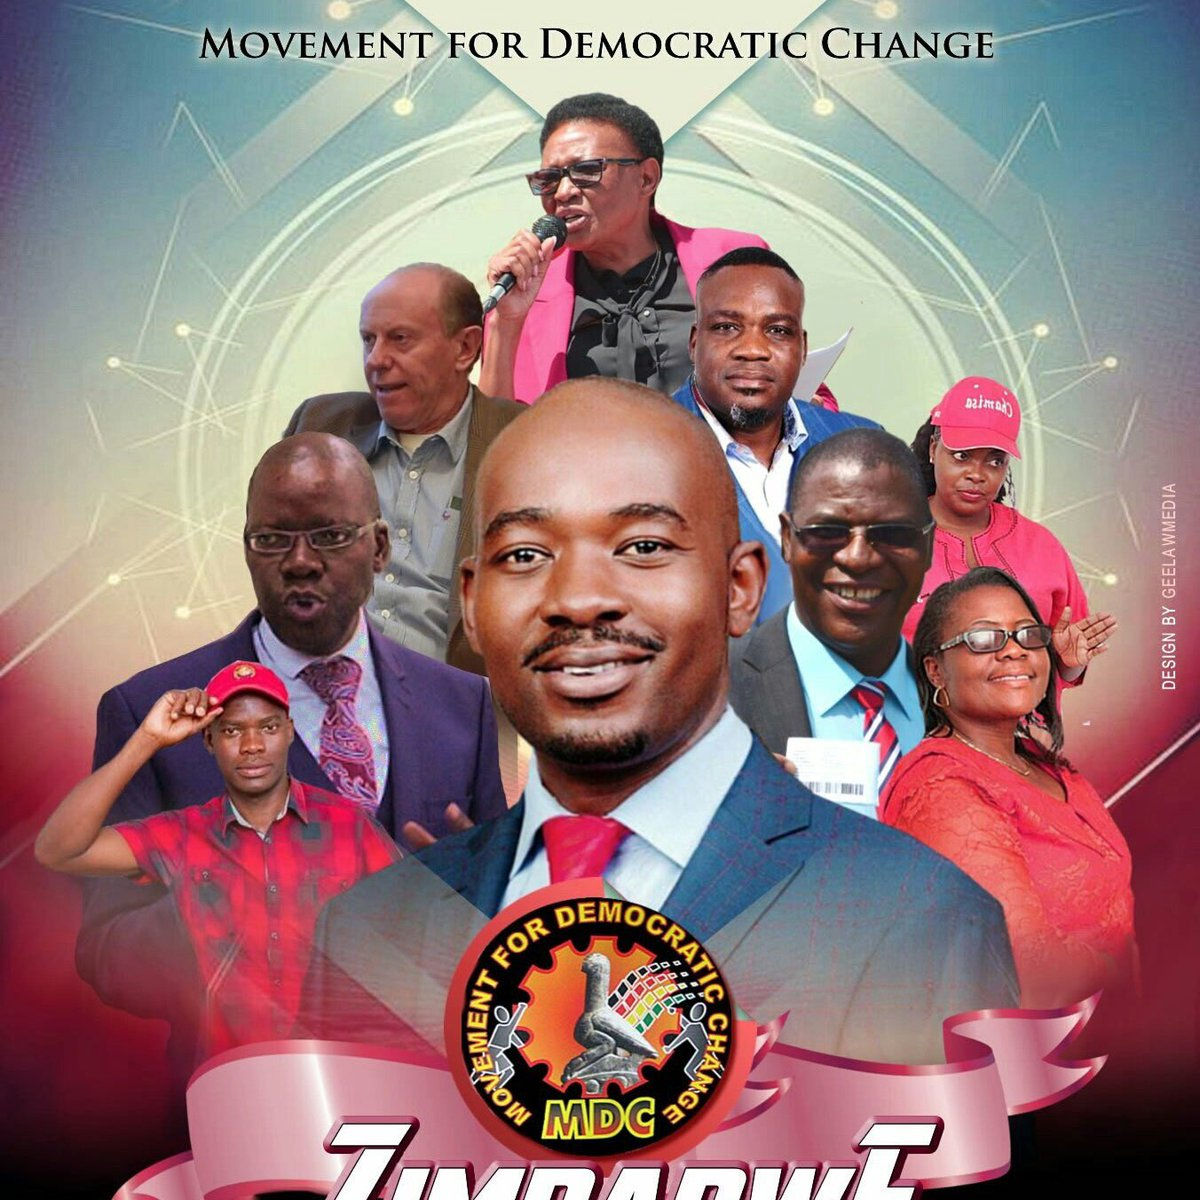 We congratulate all elected and newly appointed Members of our National Executive and Standing Committee. We stress that these posts are functions we hope you will unite, engage and mobilize for the good of the Party. #Masvingo wish the Leadership Engage in unity @nelsonchamisa<br>http://pic.twitter.com/NSr0AQ8wwI